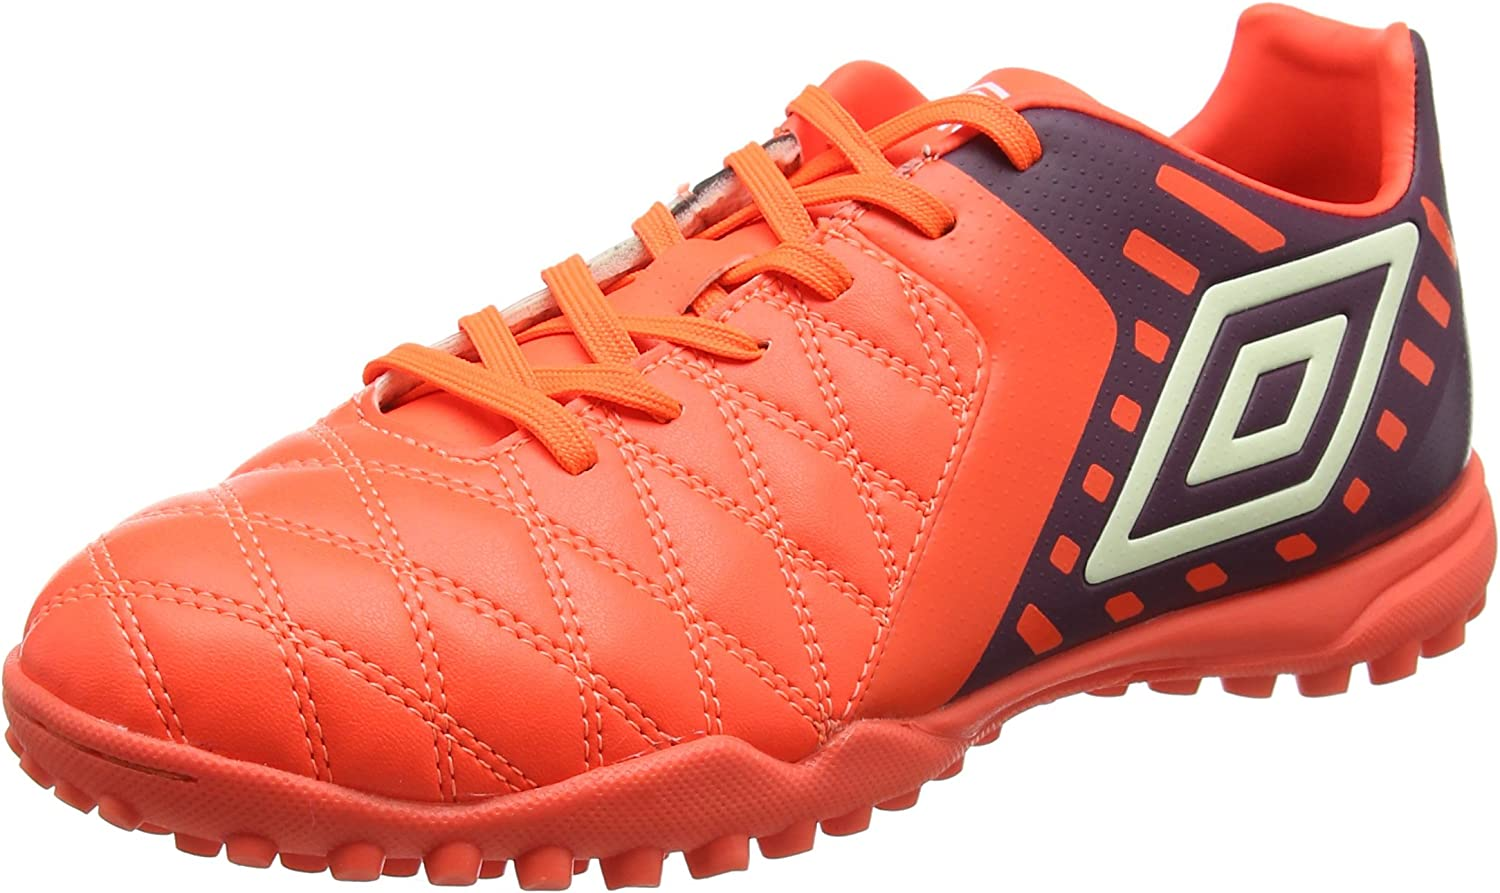 Umbro Men's Football Competition Now free shipping Max 86% OFF Boots